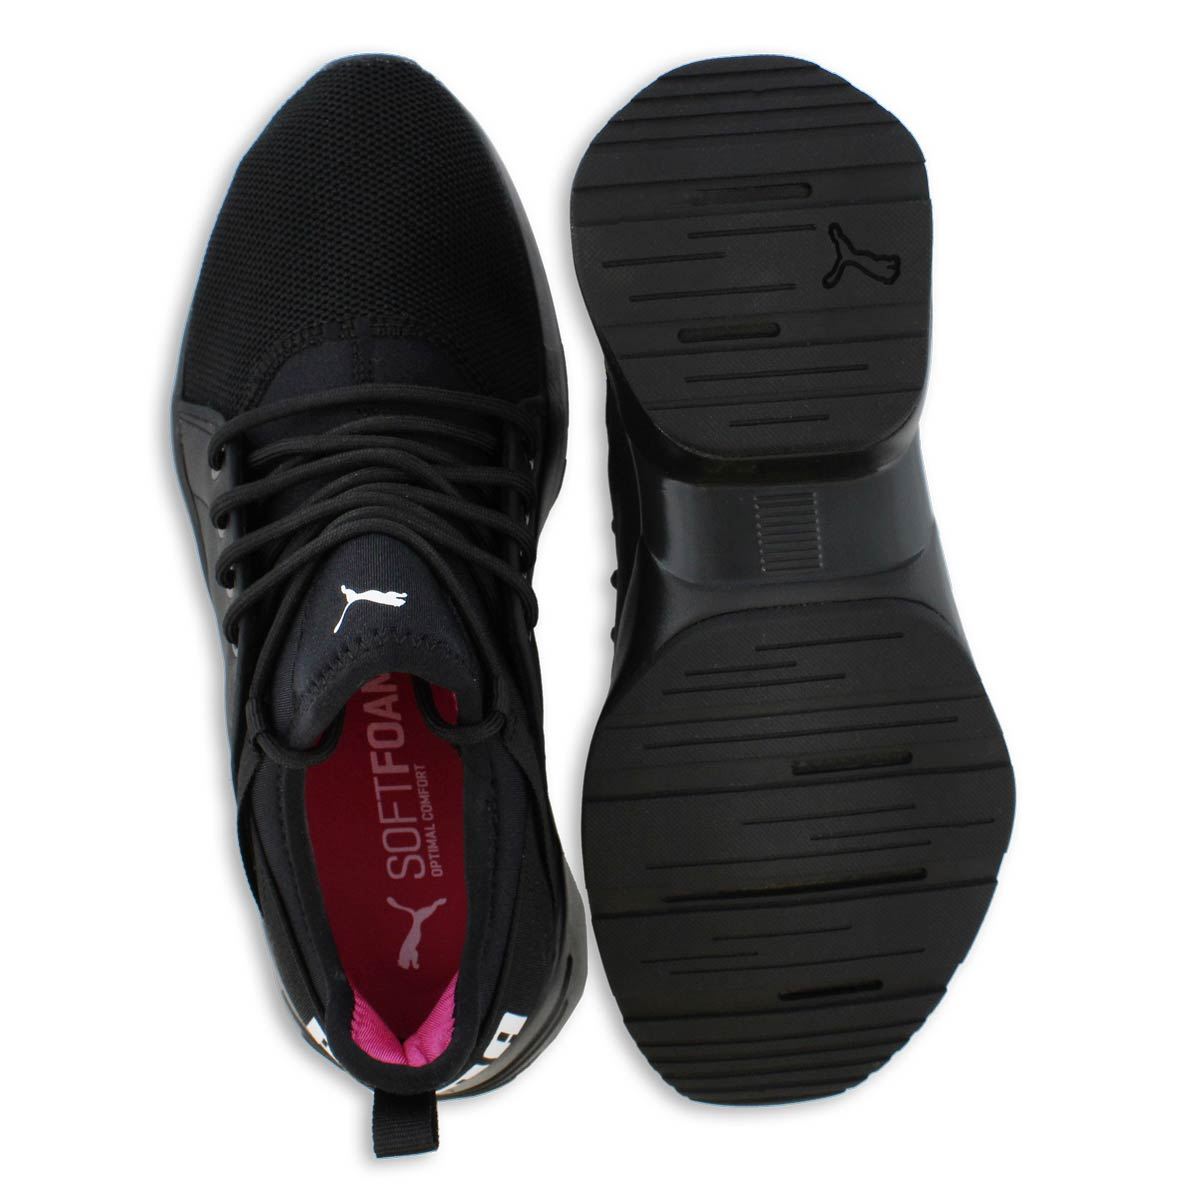 Lds Sirena black lace up sneaker